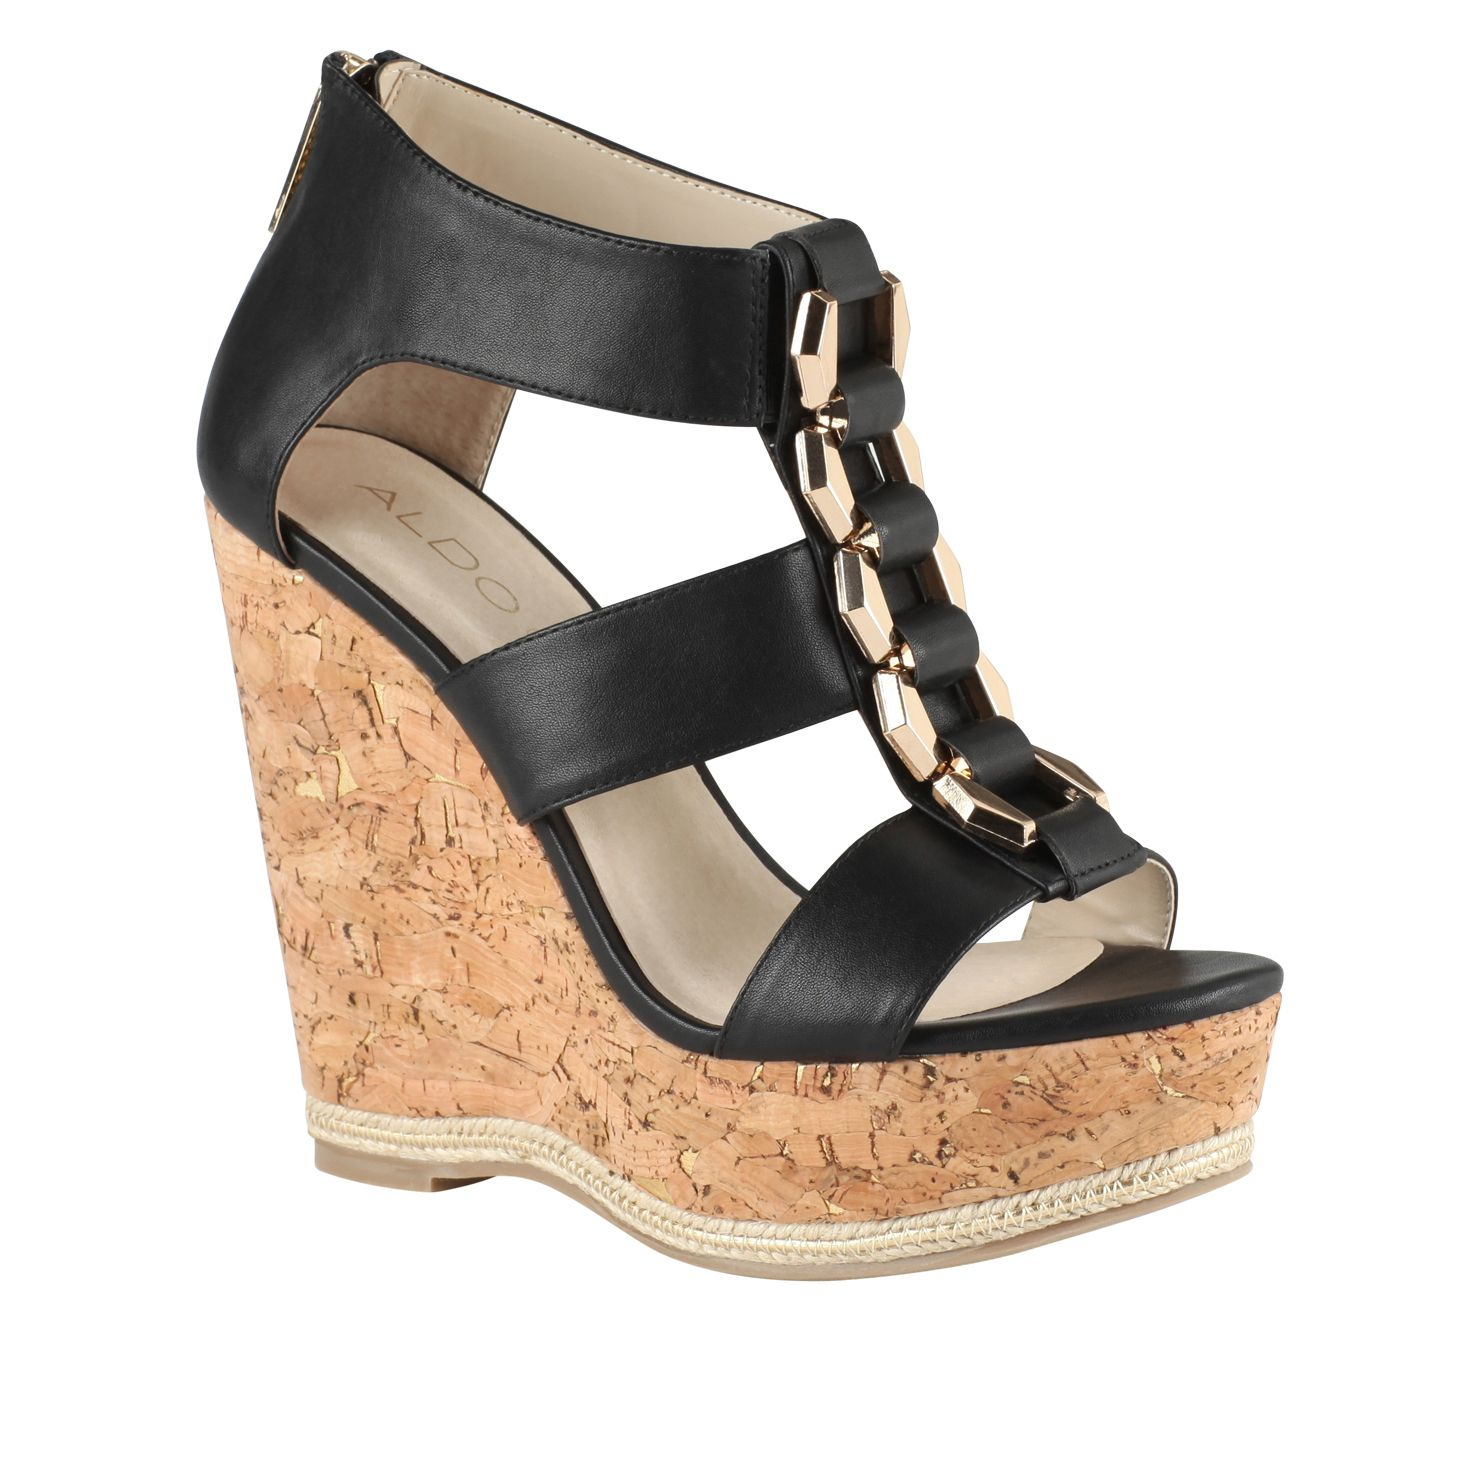 Briradia wedge sandals